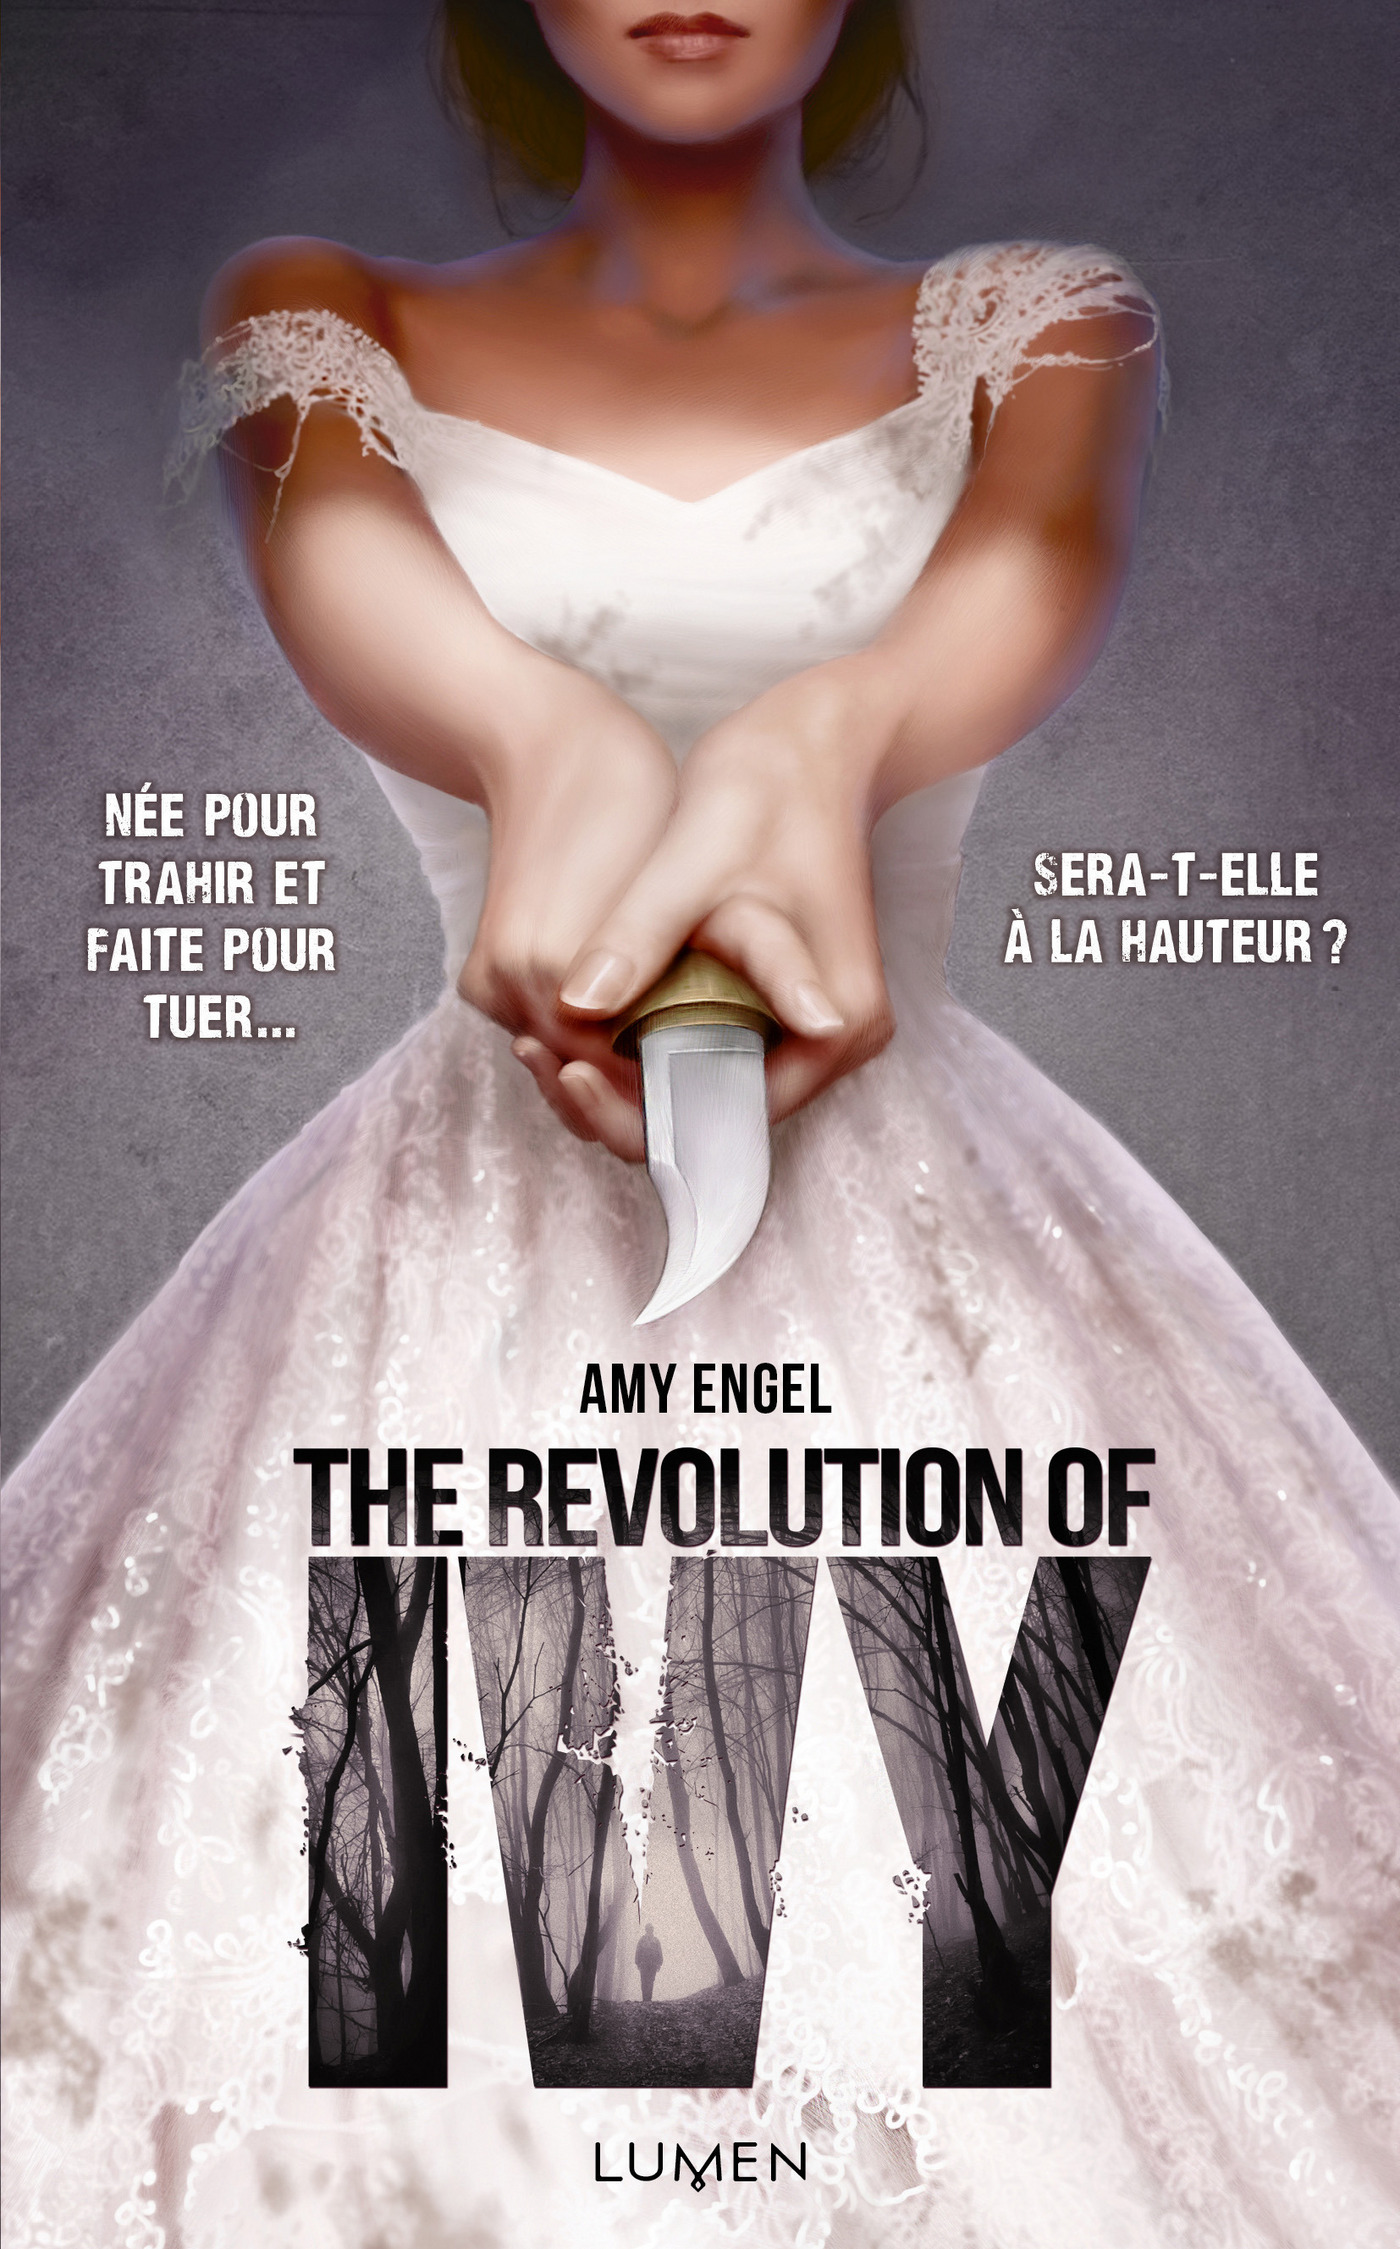 The Revolution of Ivy (ebook)